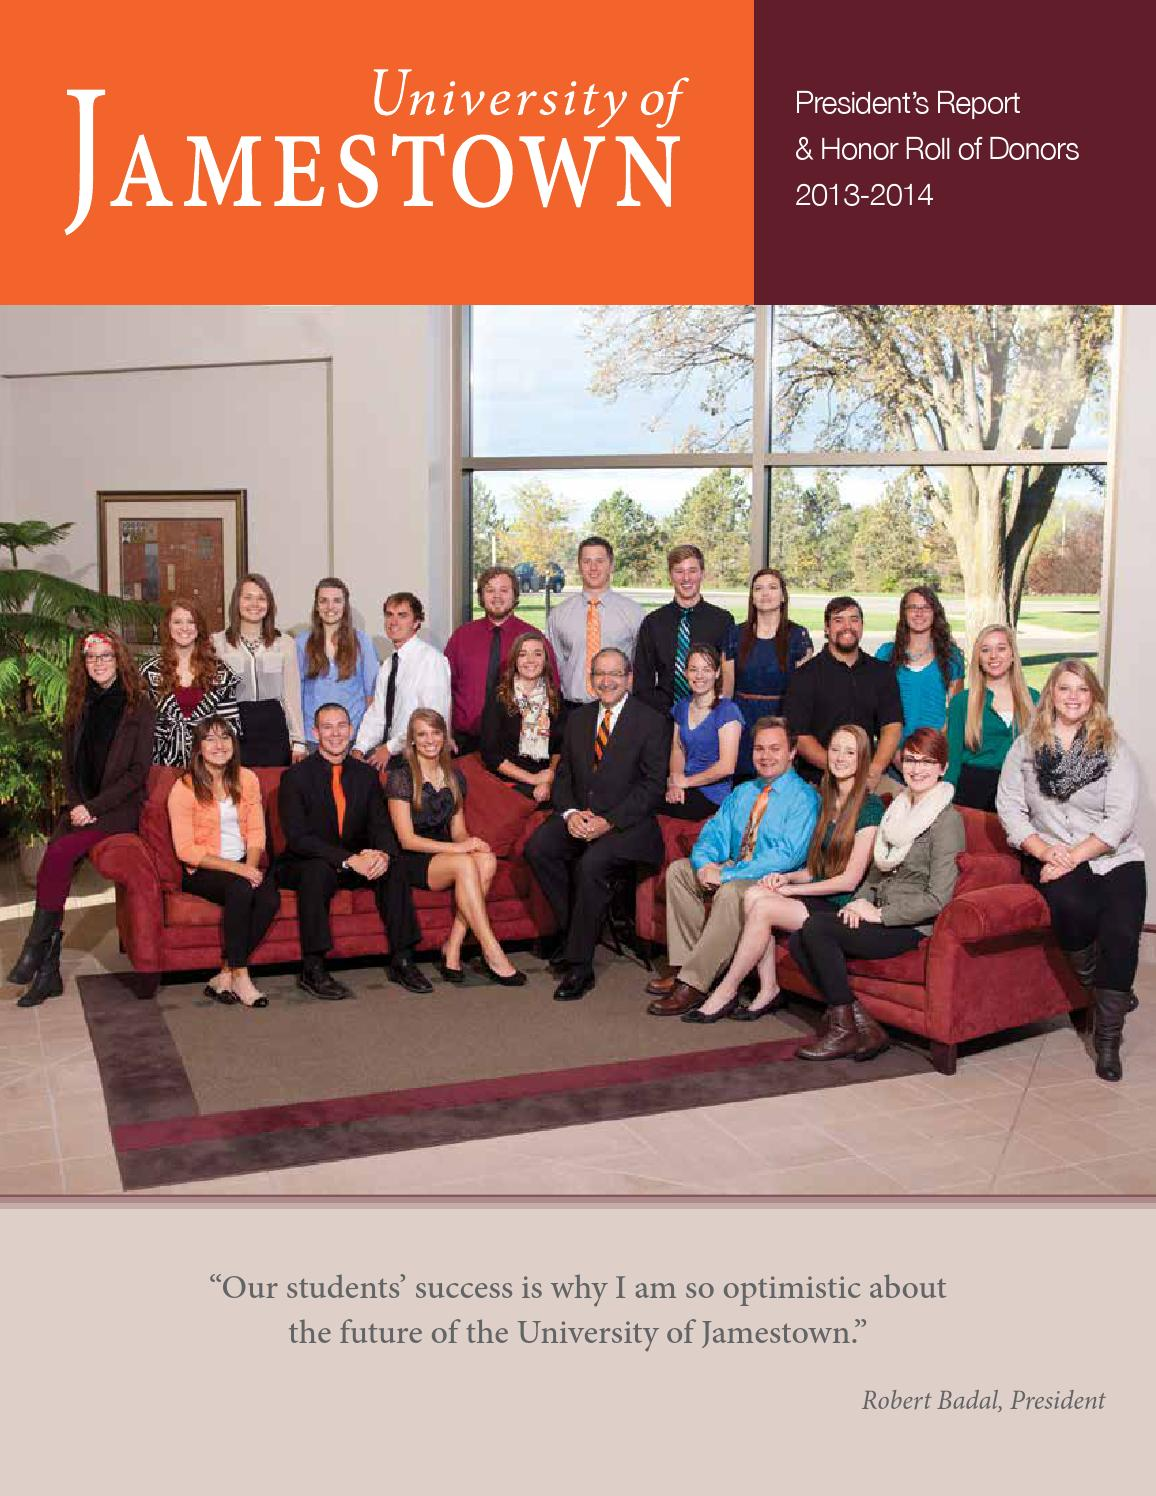 University Of Jamestown President S Report 2013 2014 By